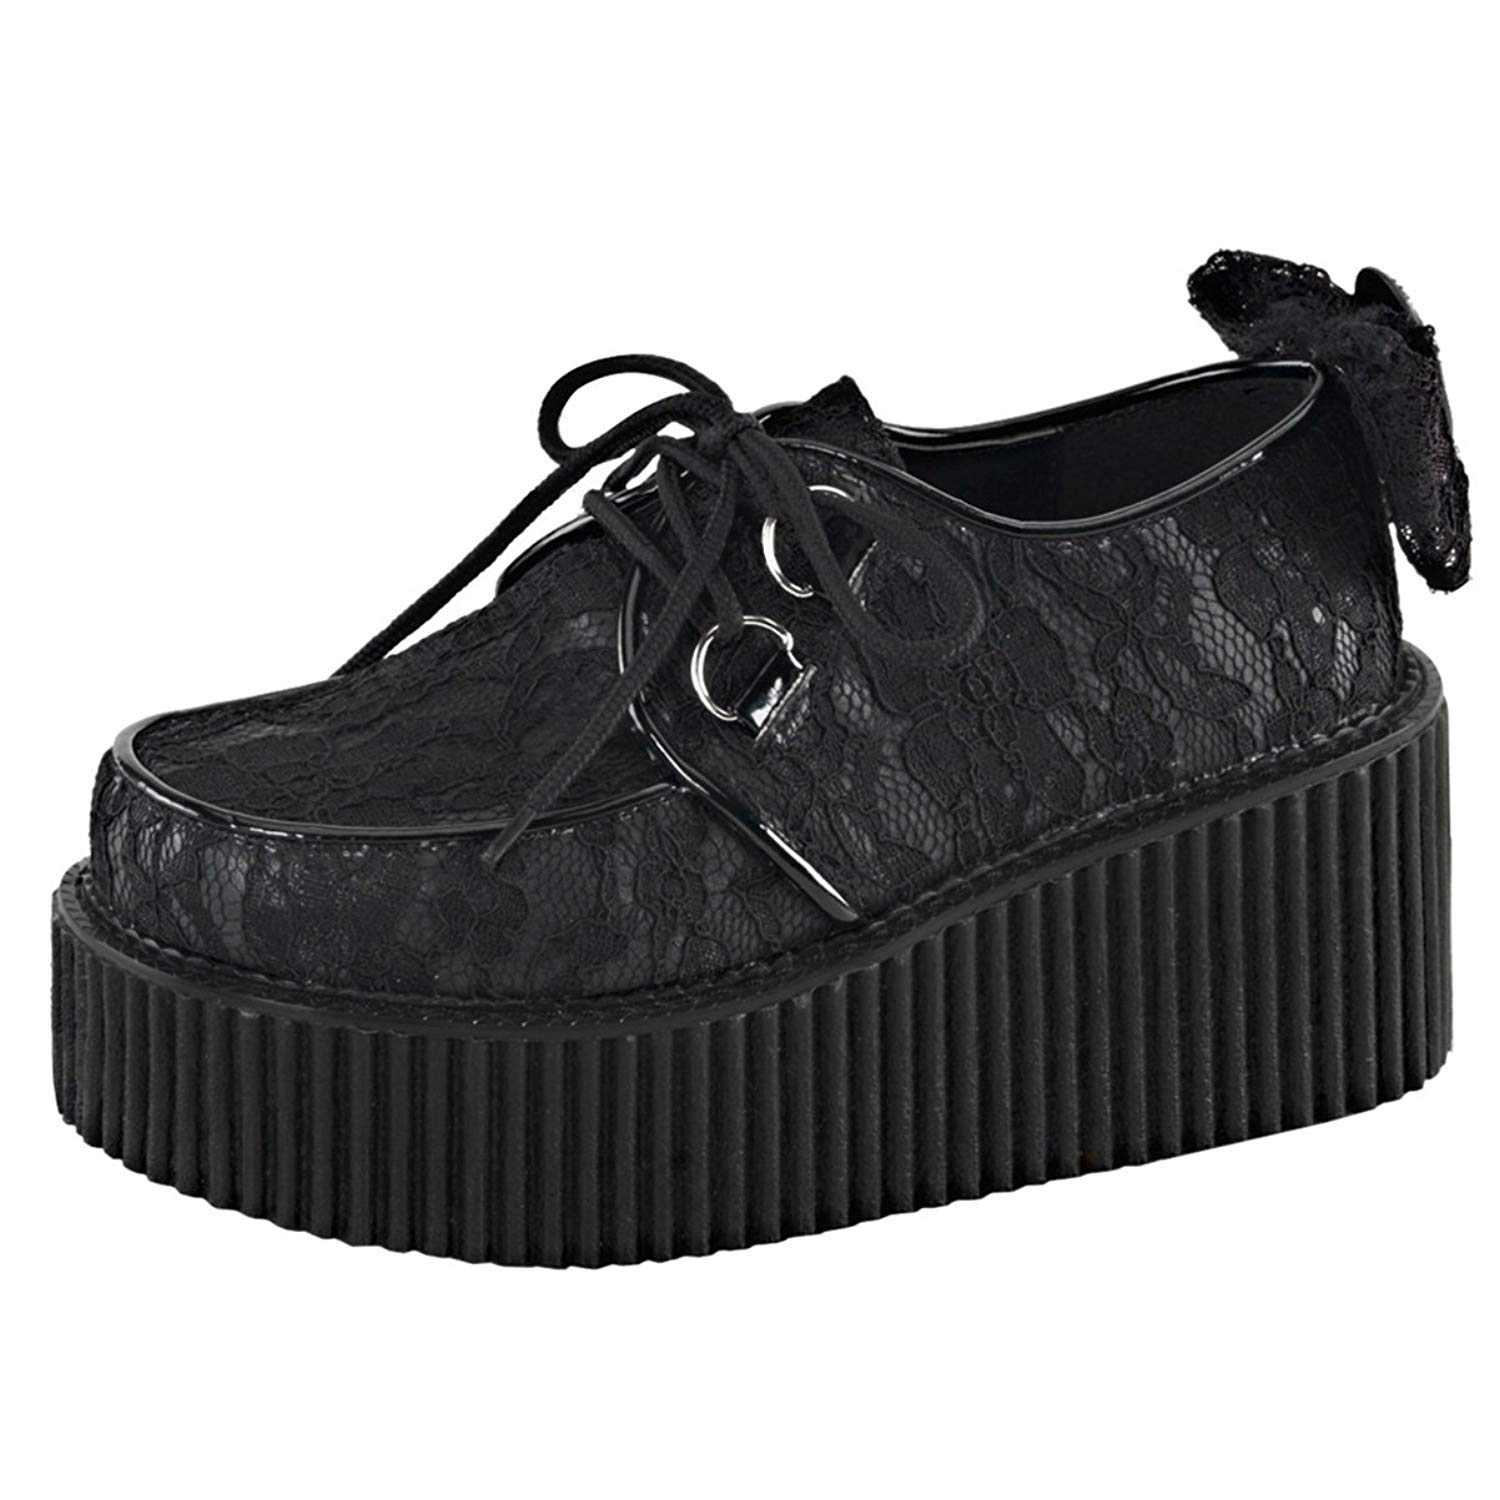 Summitfashions Womens Black Lace Shoes Lace up Platform Creepers Skeleton Bow 3 inch Platform